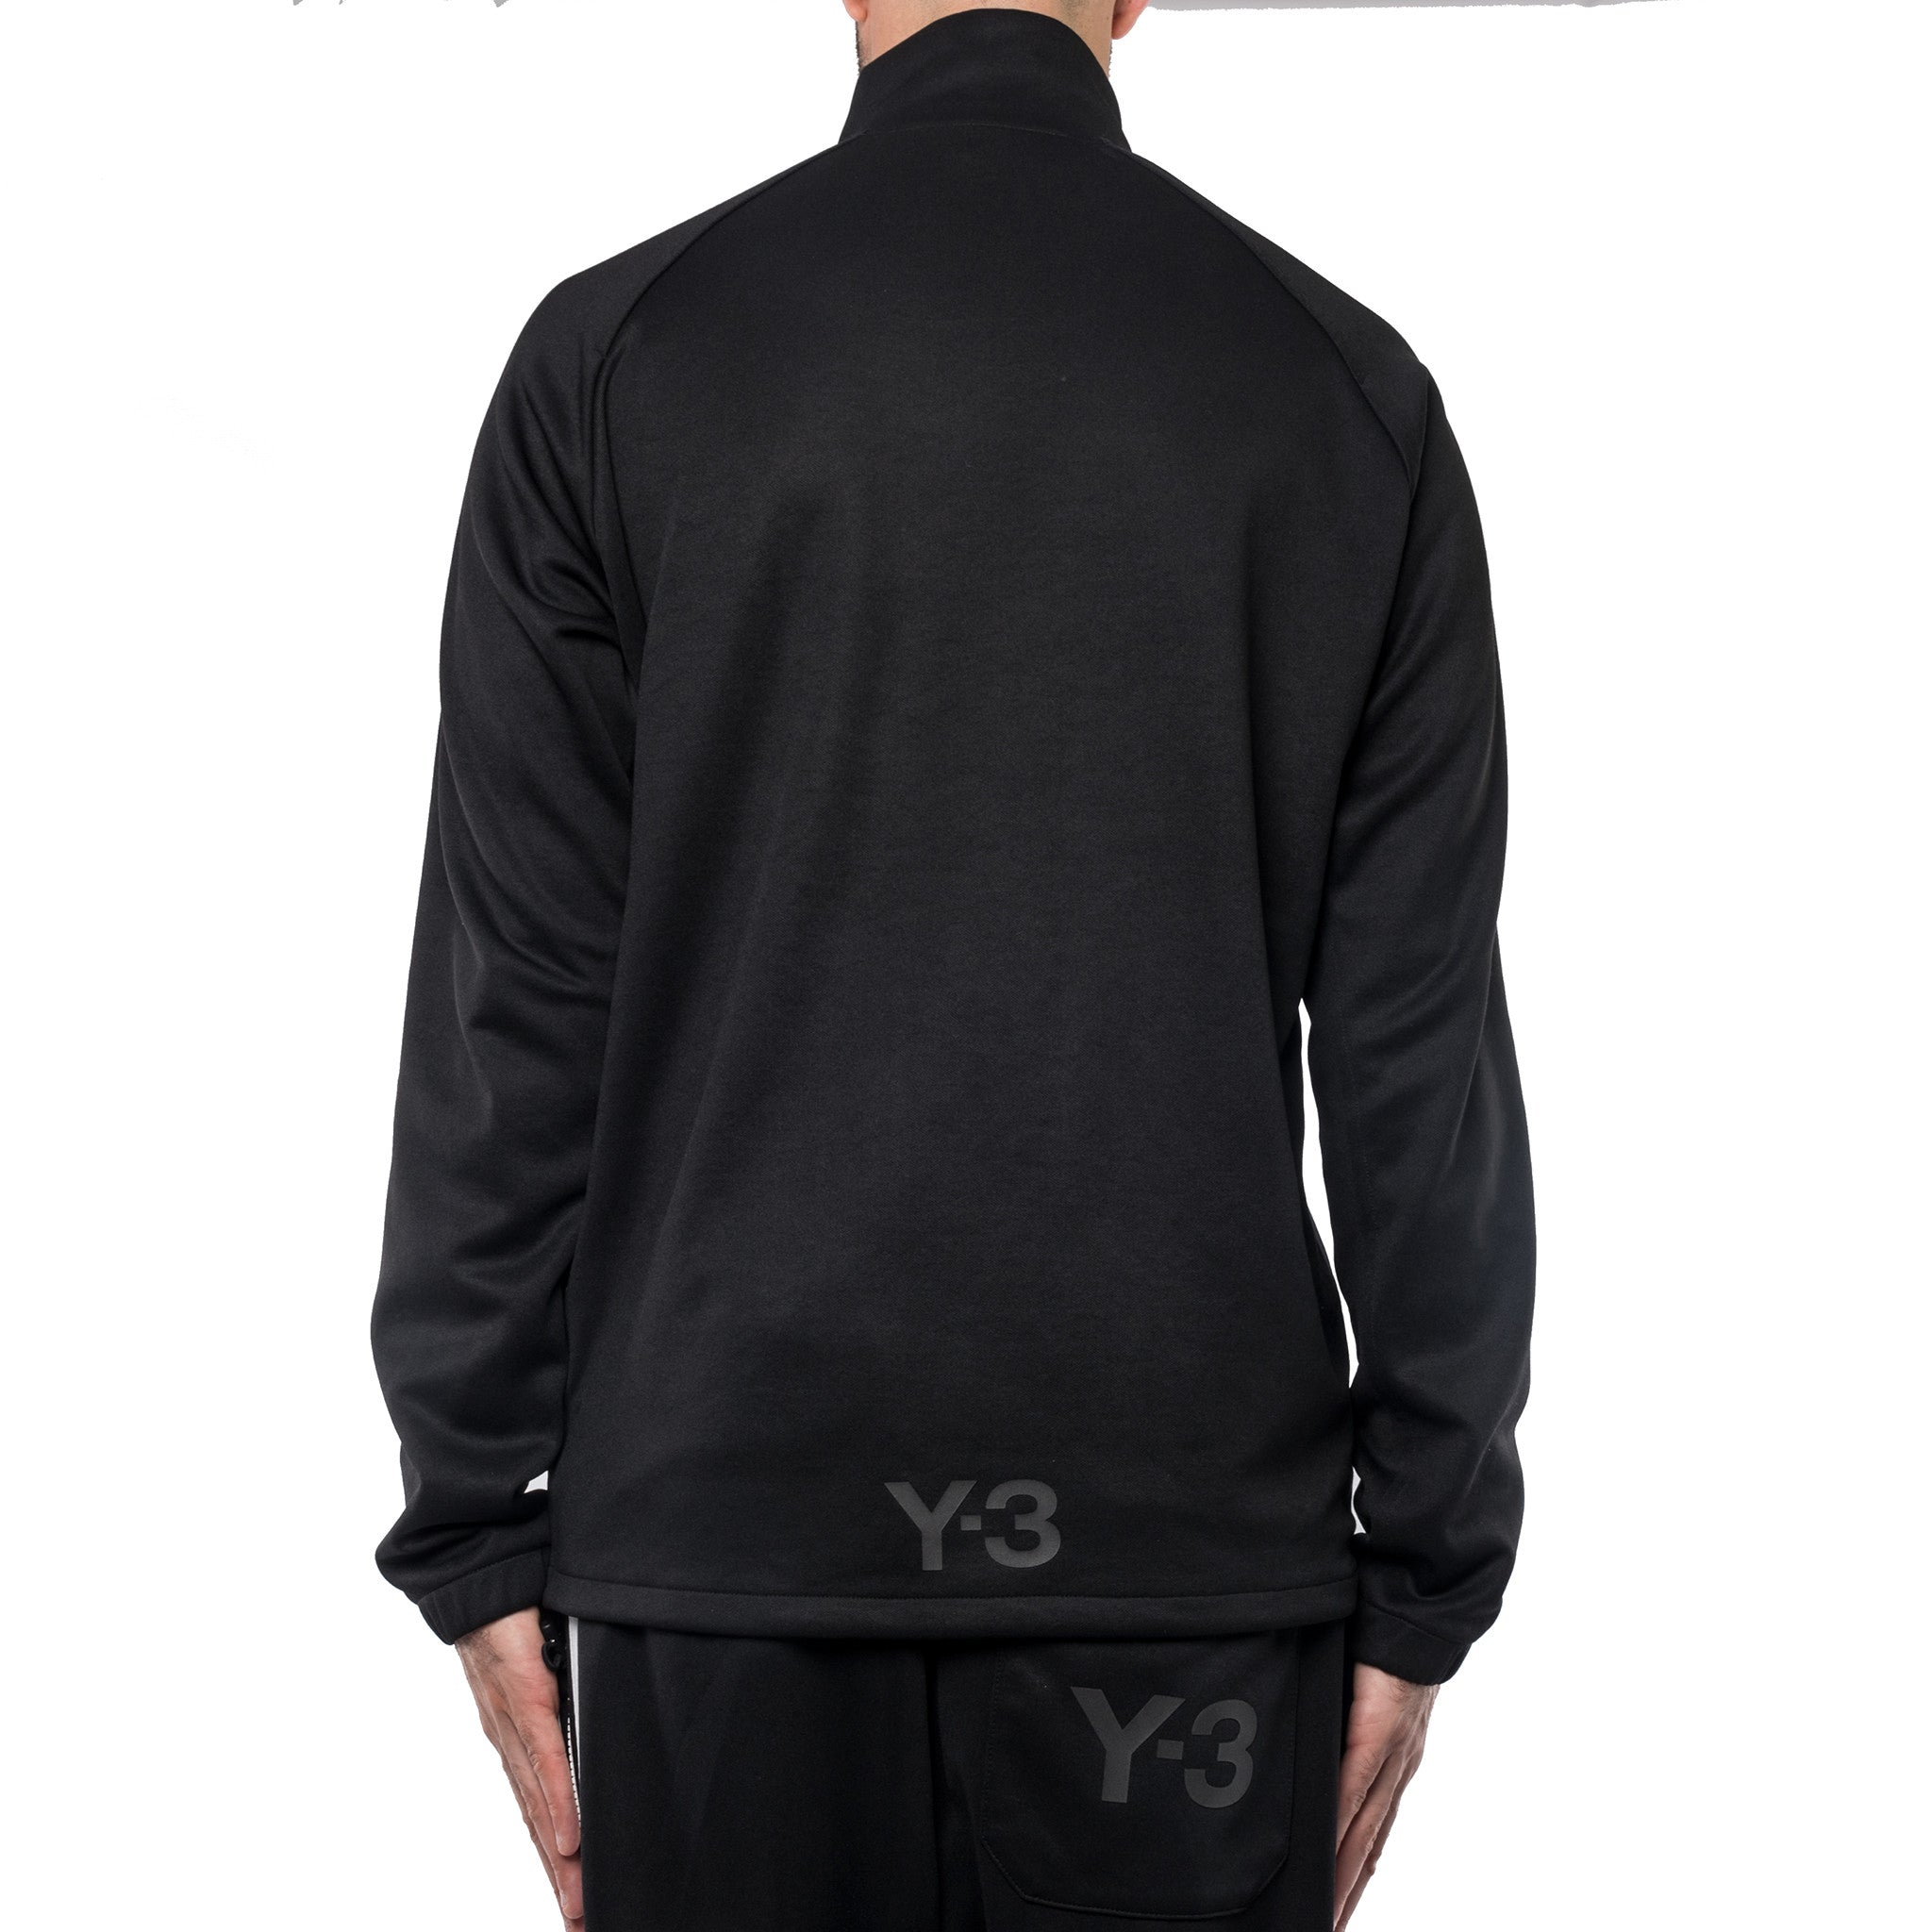 3S Track Top